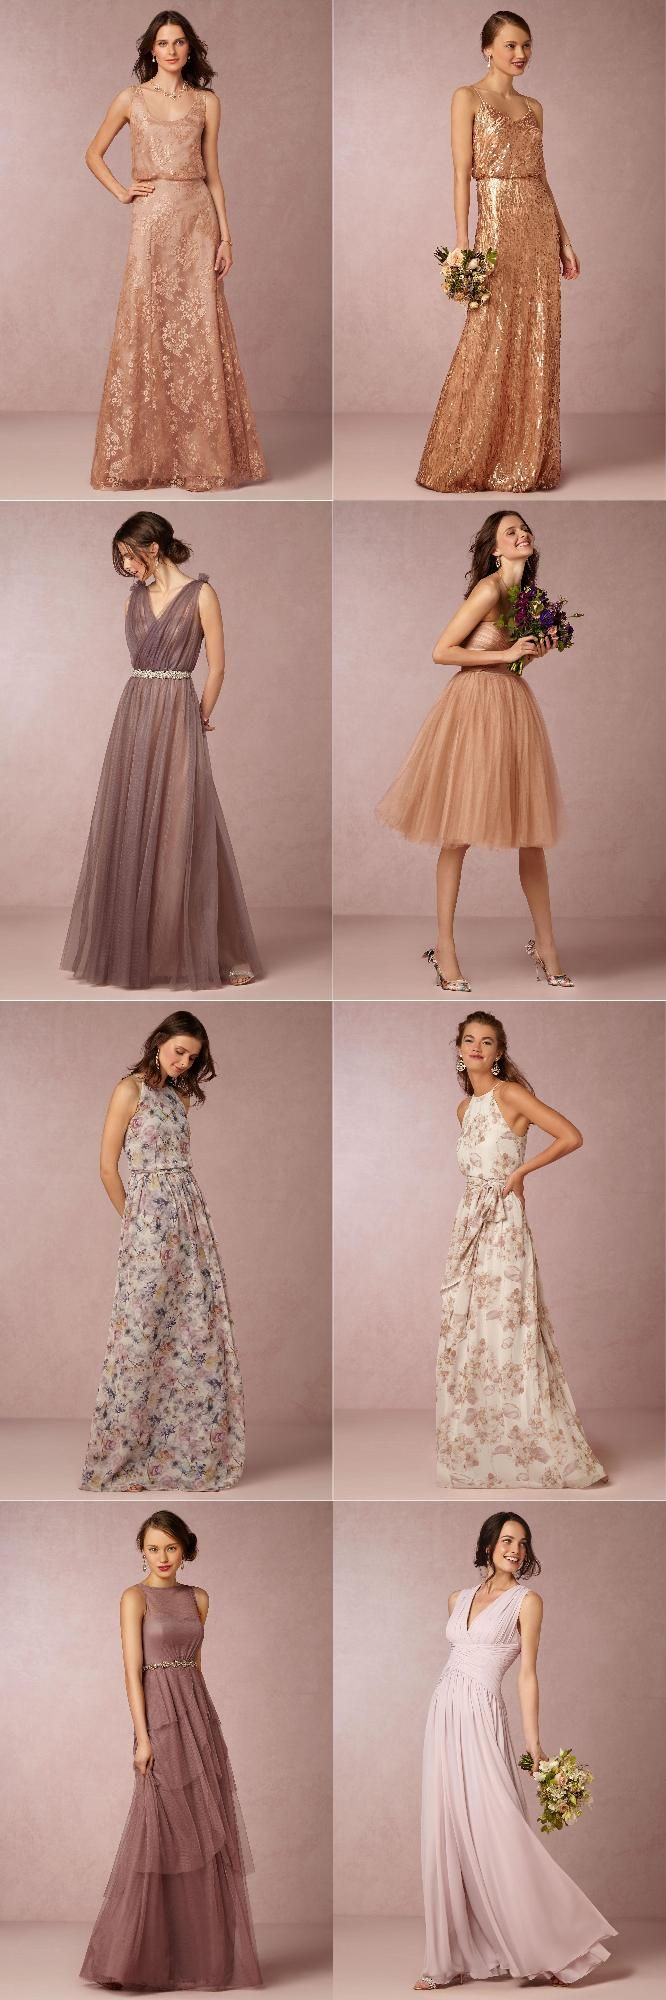 BHLDN + Serenity by Donna Morgan